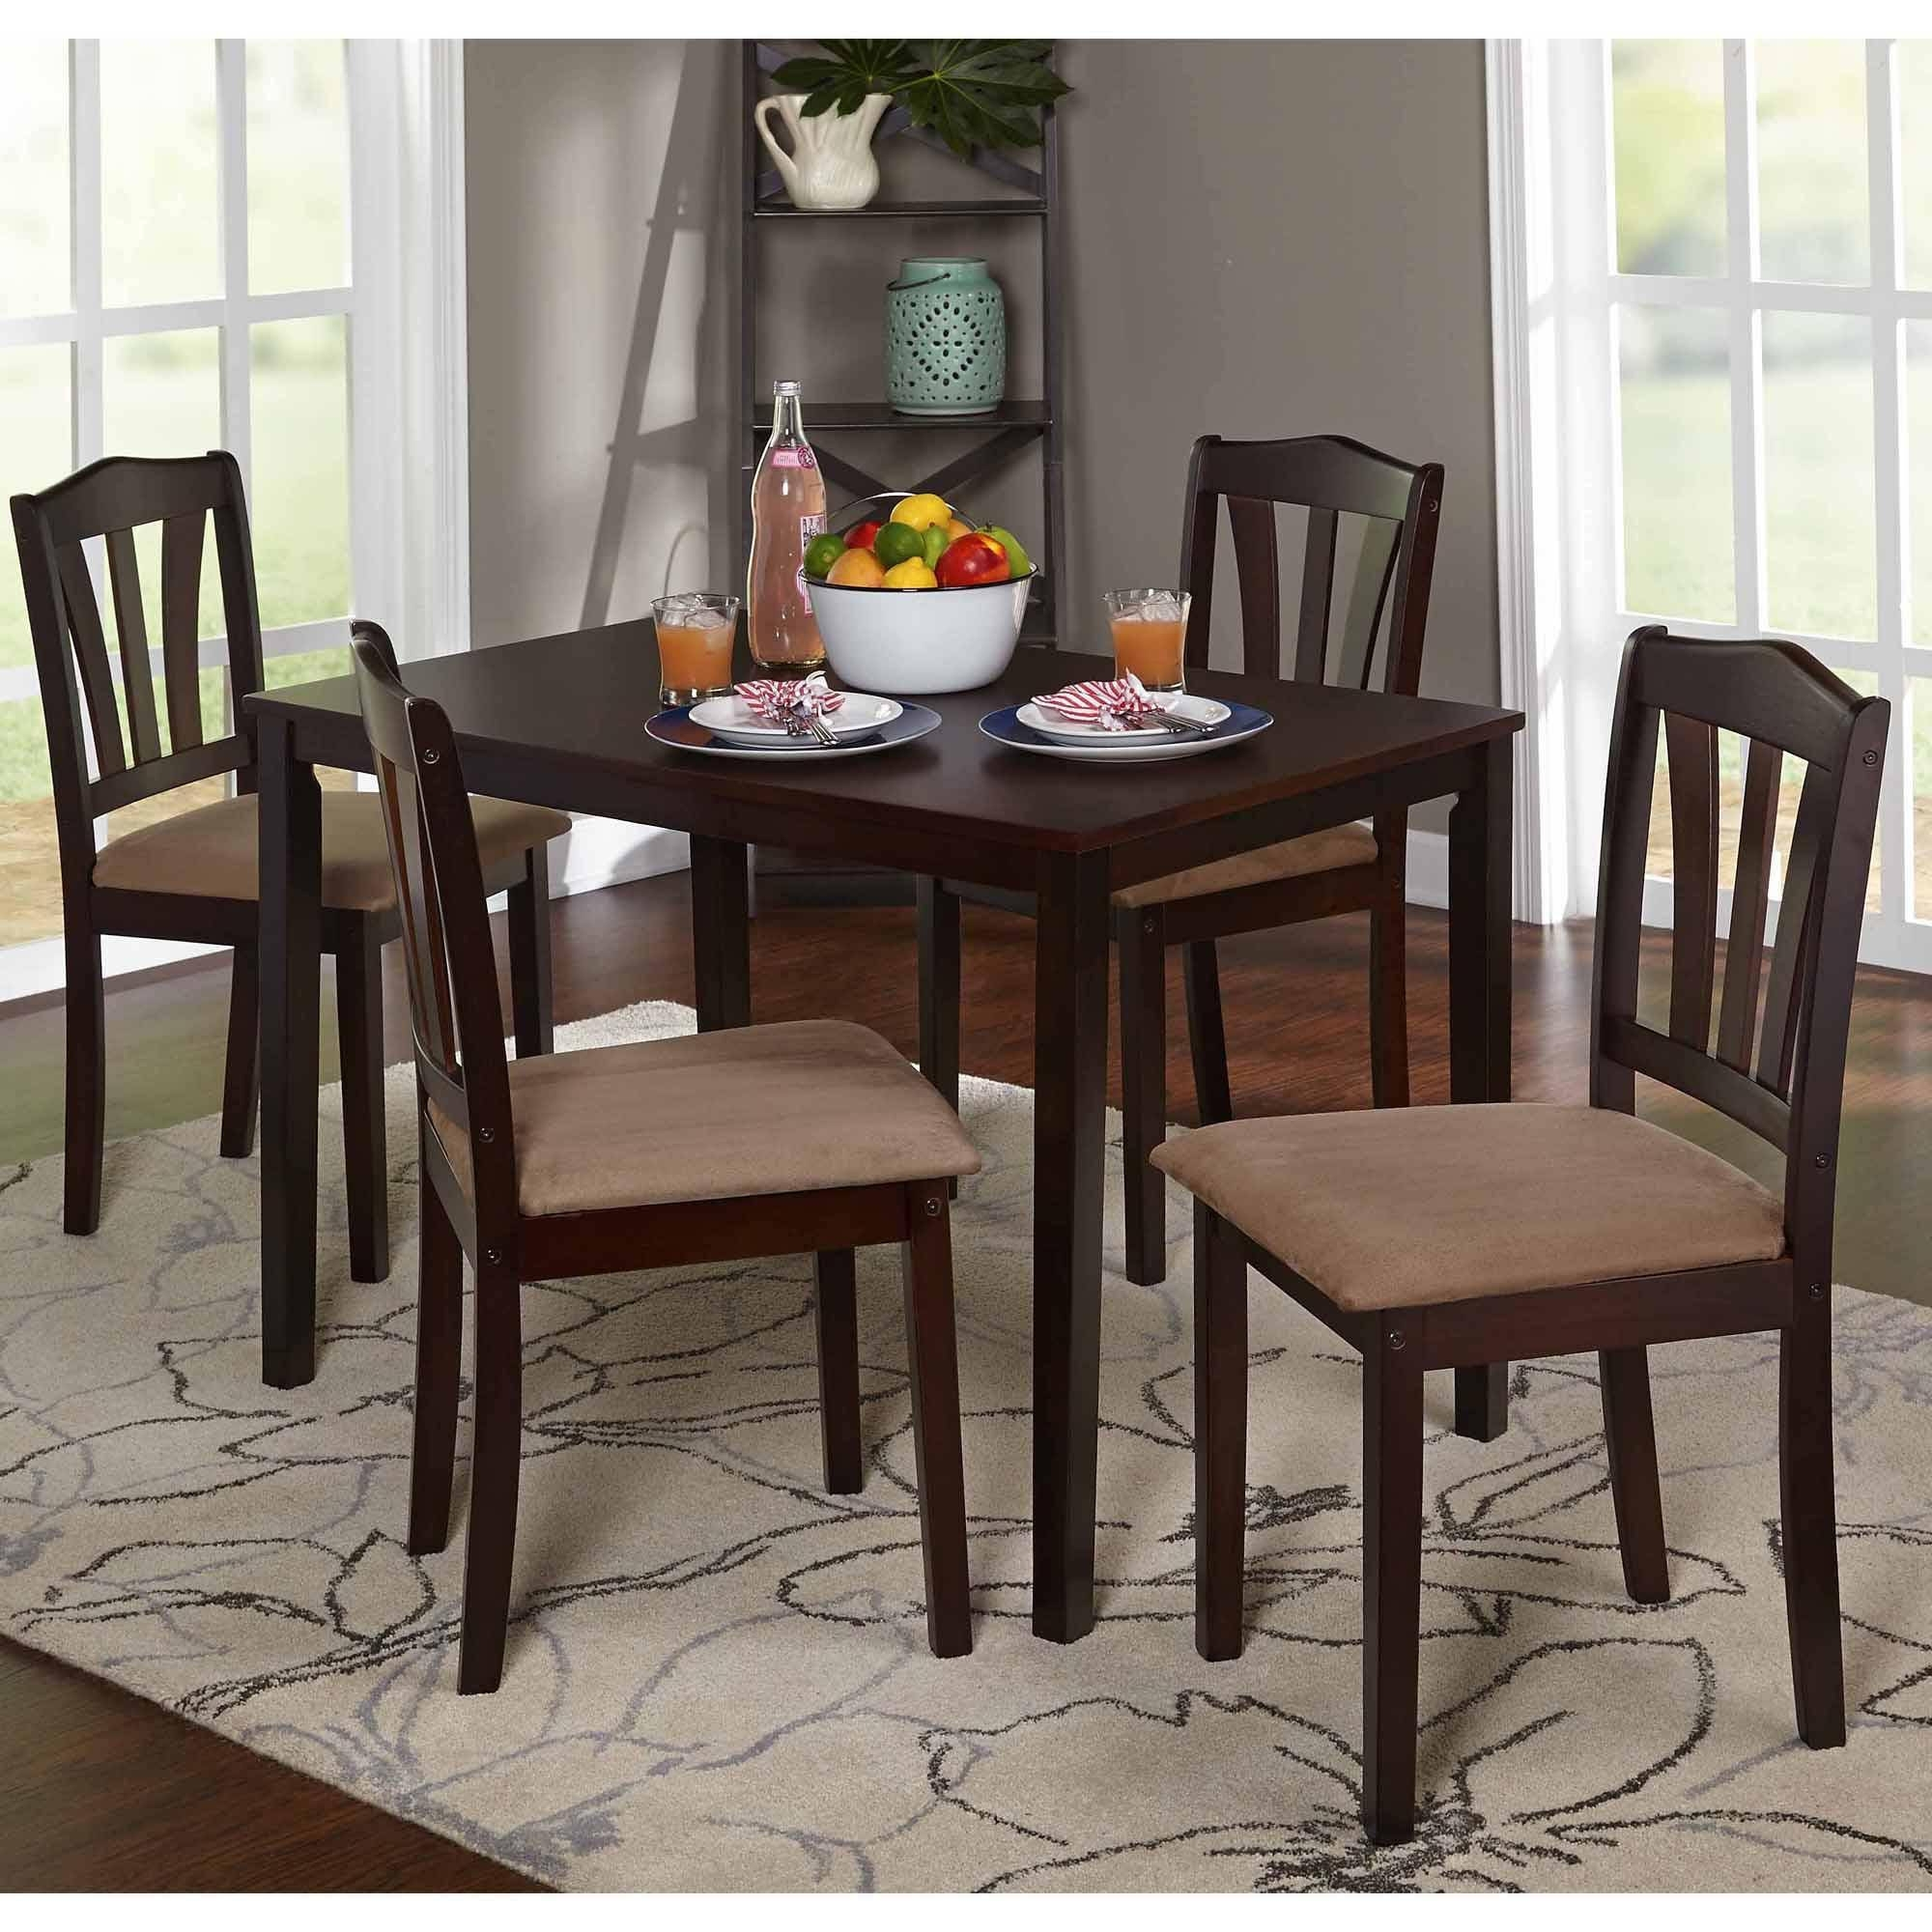 Rectangular Dining Tables Sets For Best And Newest Metropolitan 5 Piece Dining Set, Multiple Colors – Walmart (View 16 of 25)